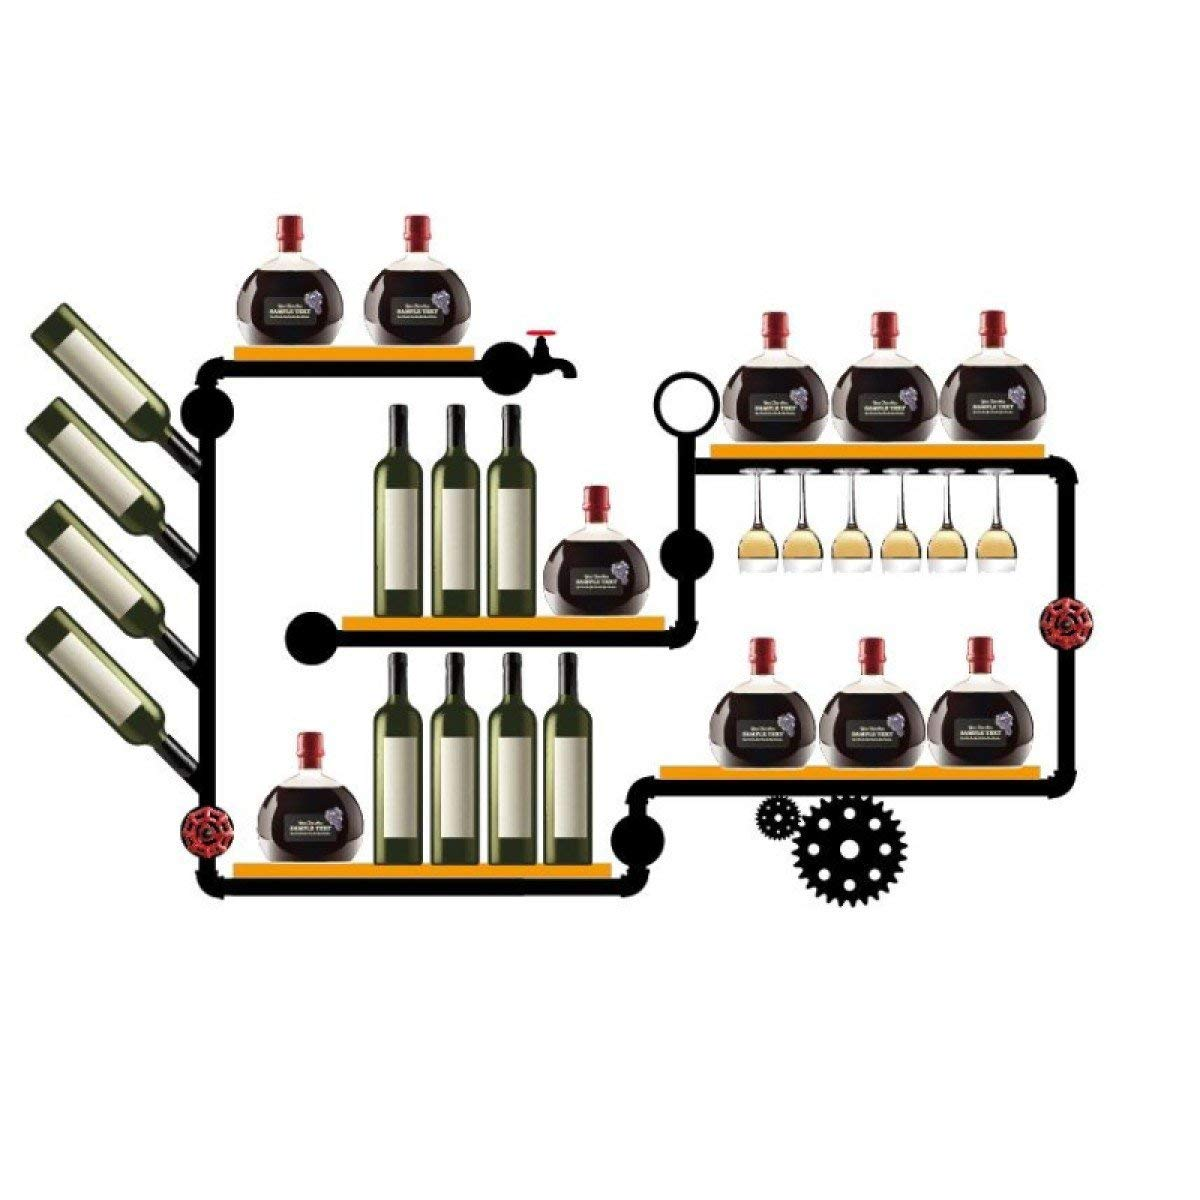 Sunday Qh Wine Racks Wall Hangings Wrought Iron Shelves Cabinets Hanging Gl Holders Vintage Pipes Creative Decoration E In